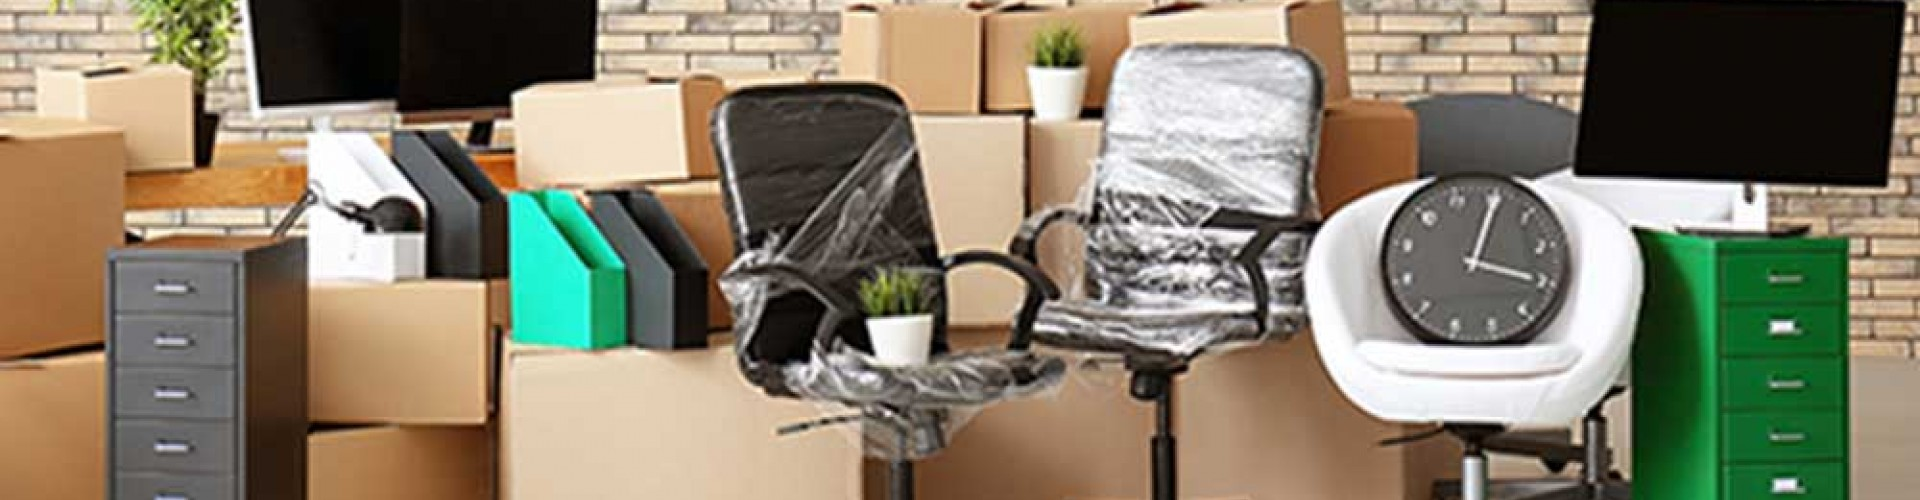 wrapped office furniture|storm clouds